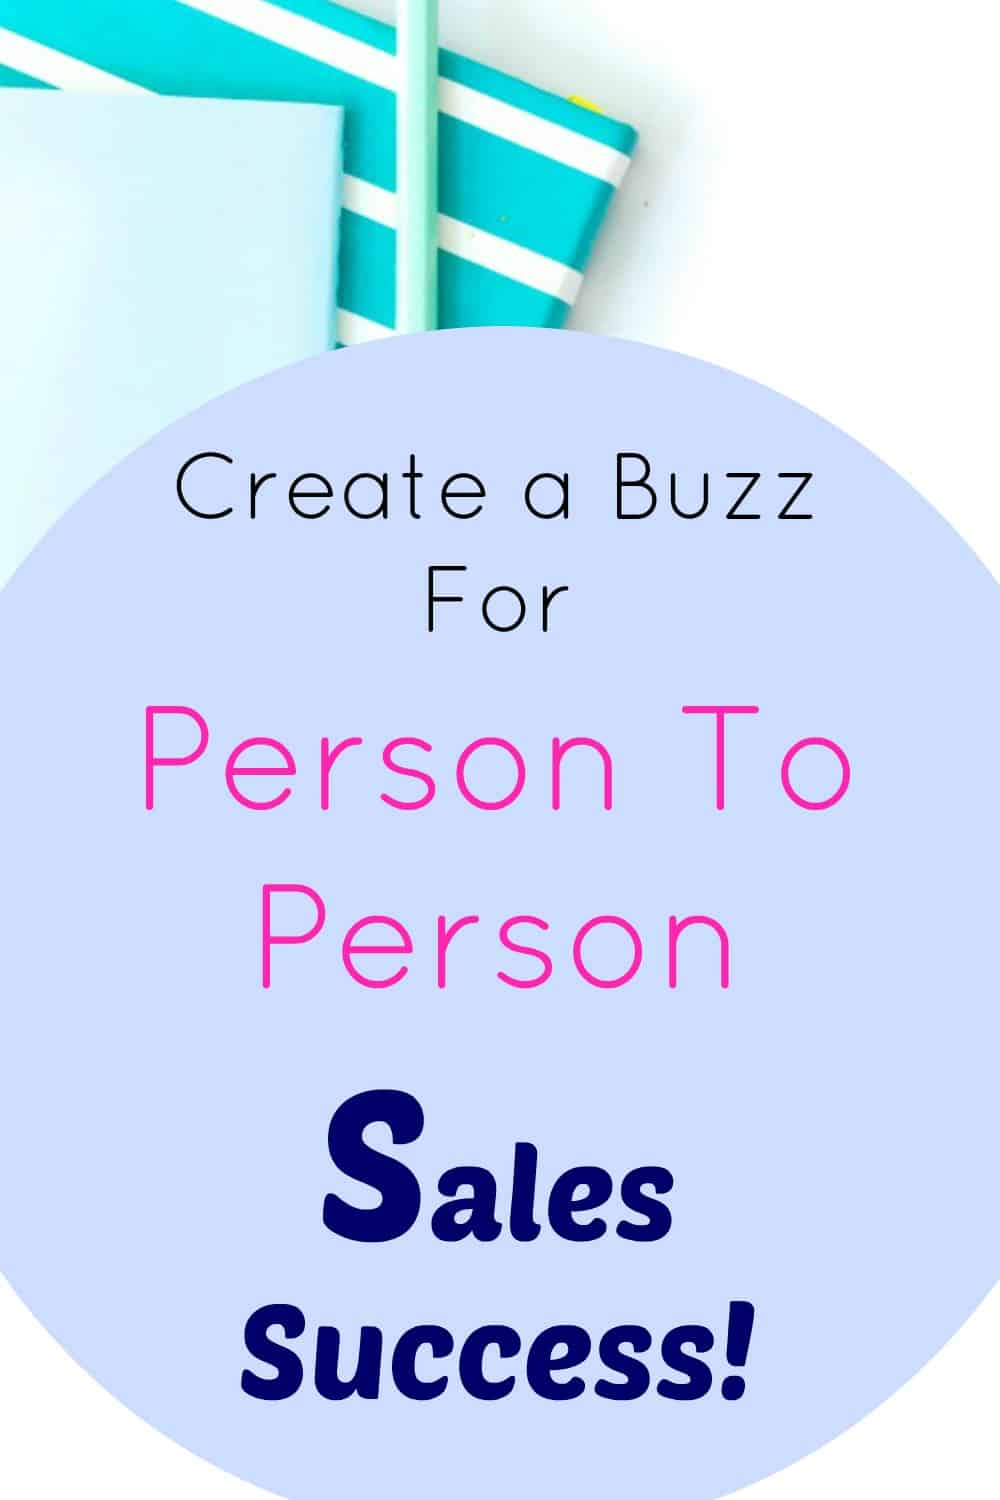 Create a Buzz For Person To Person Sales Success!